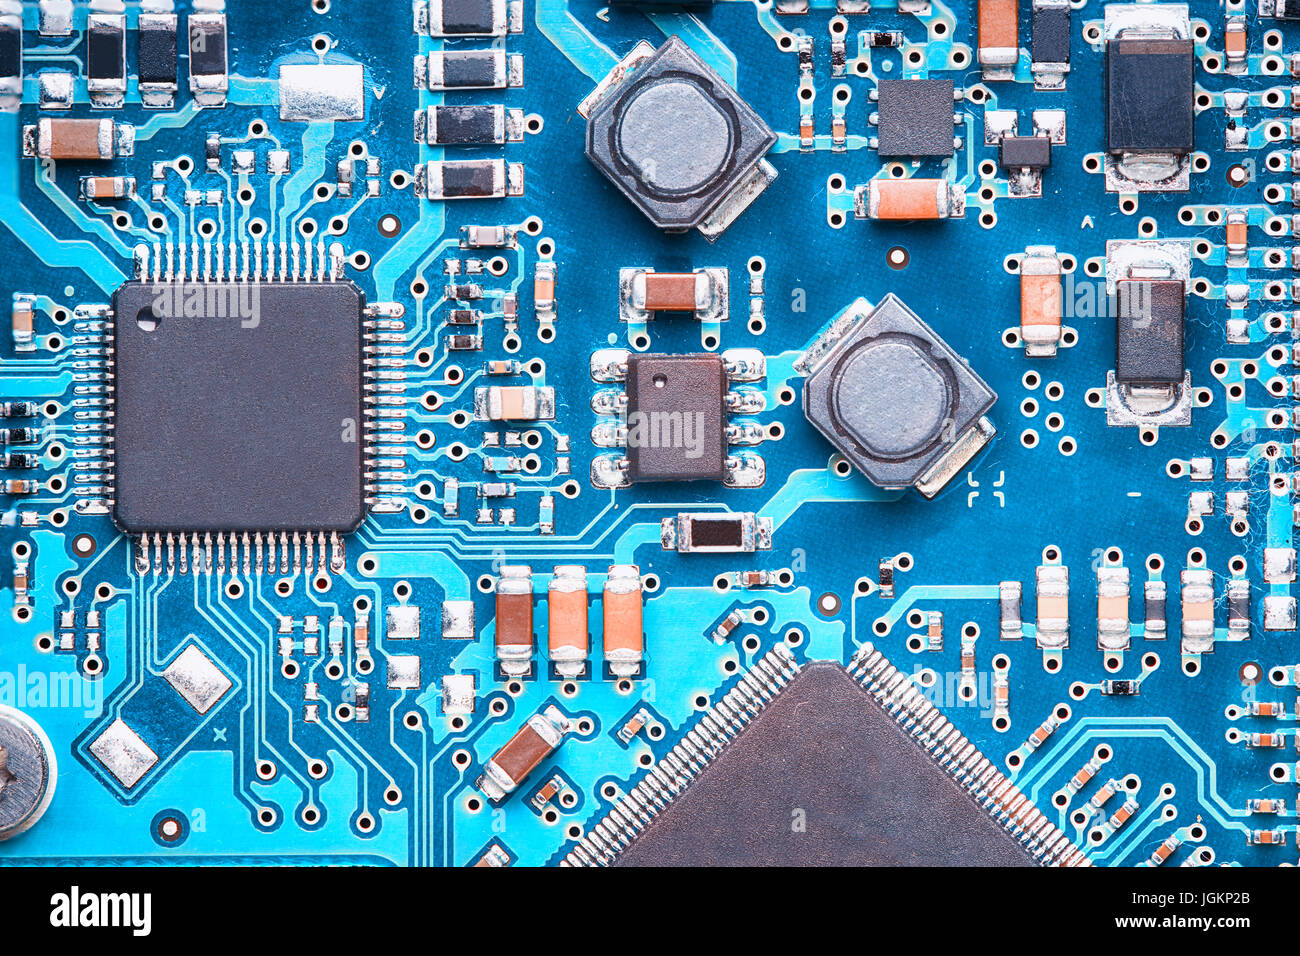 Circuit Board Stock Photos & Circuit Board Stock Images - Alamy